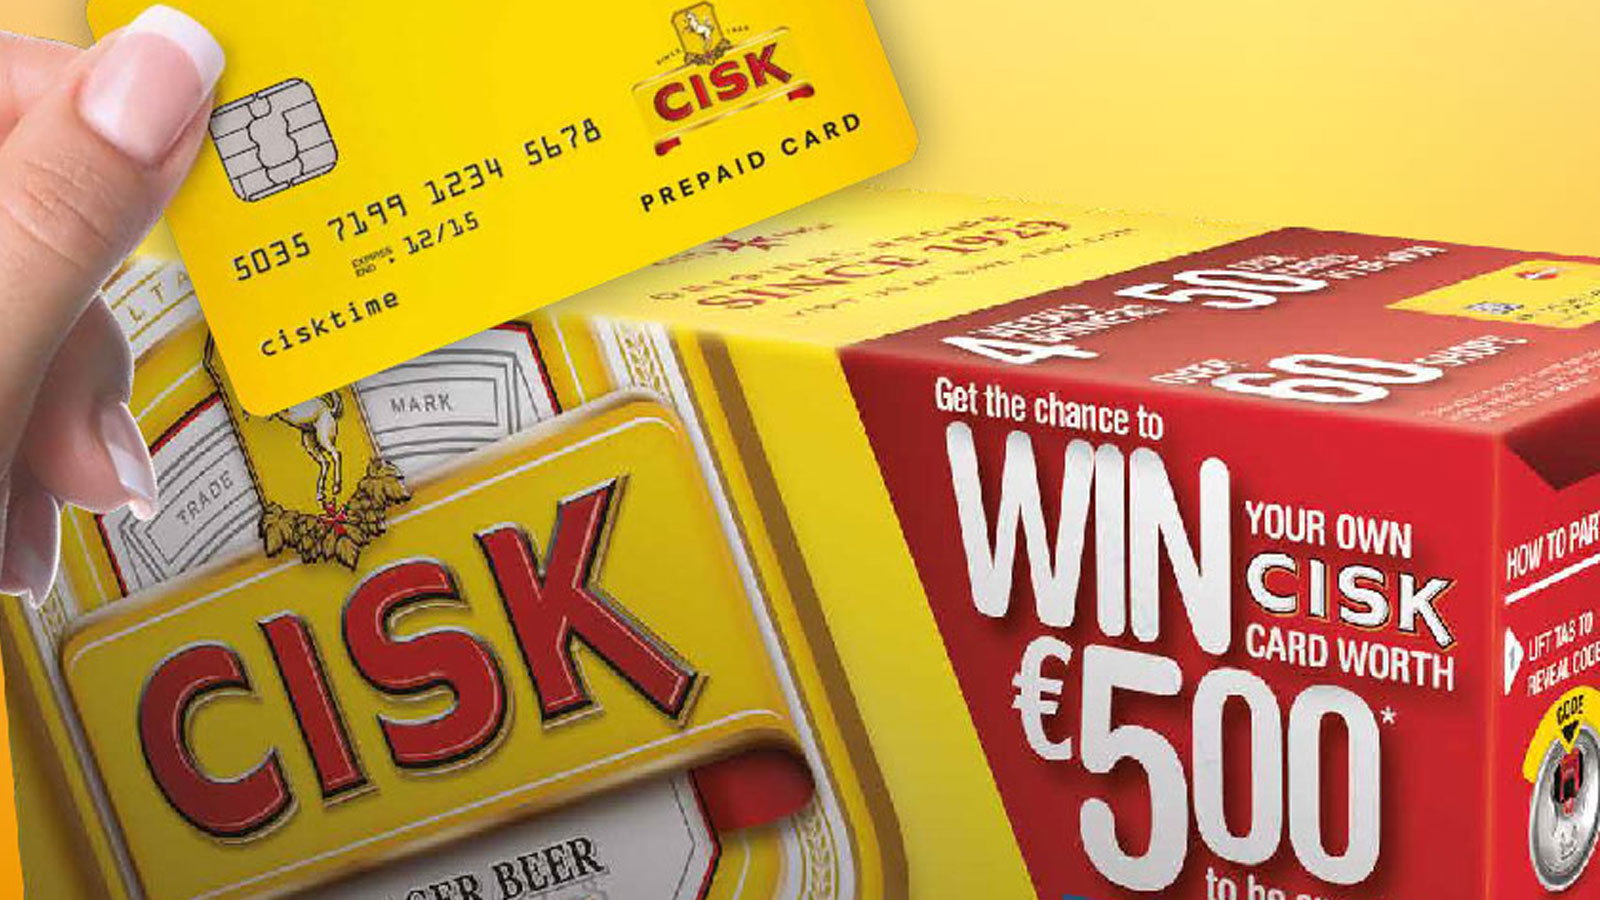 New exciting promotion from Cisk Lager Beer